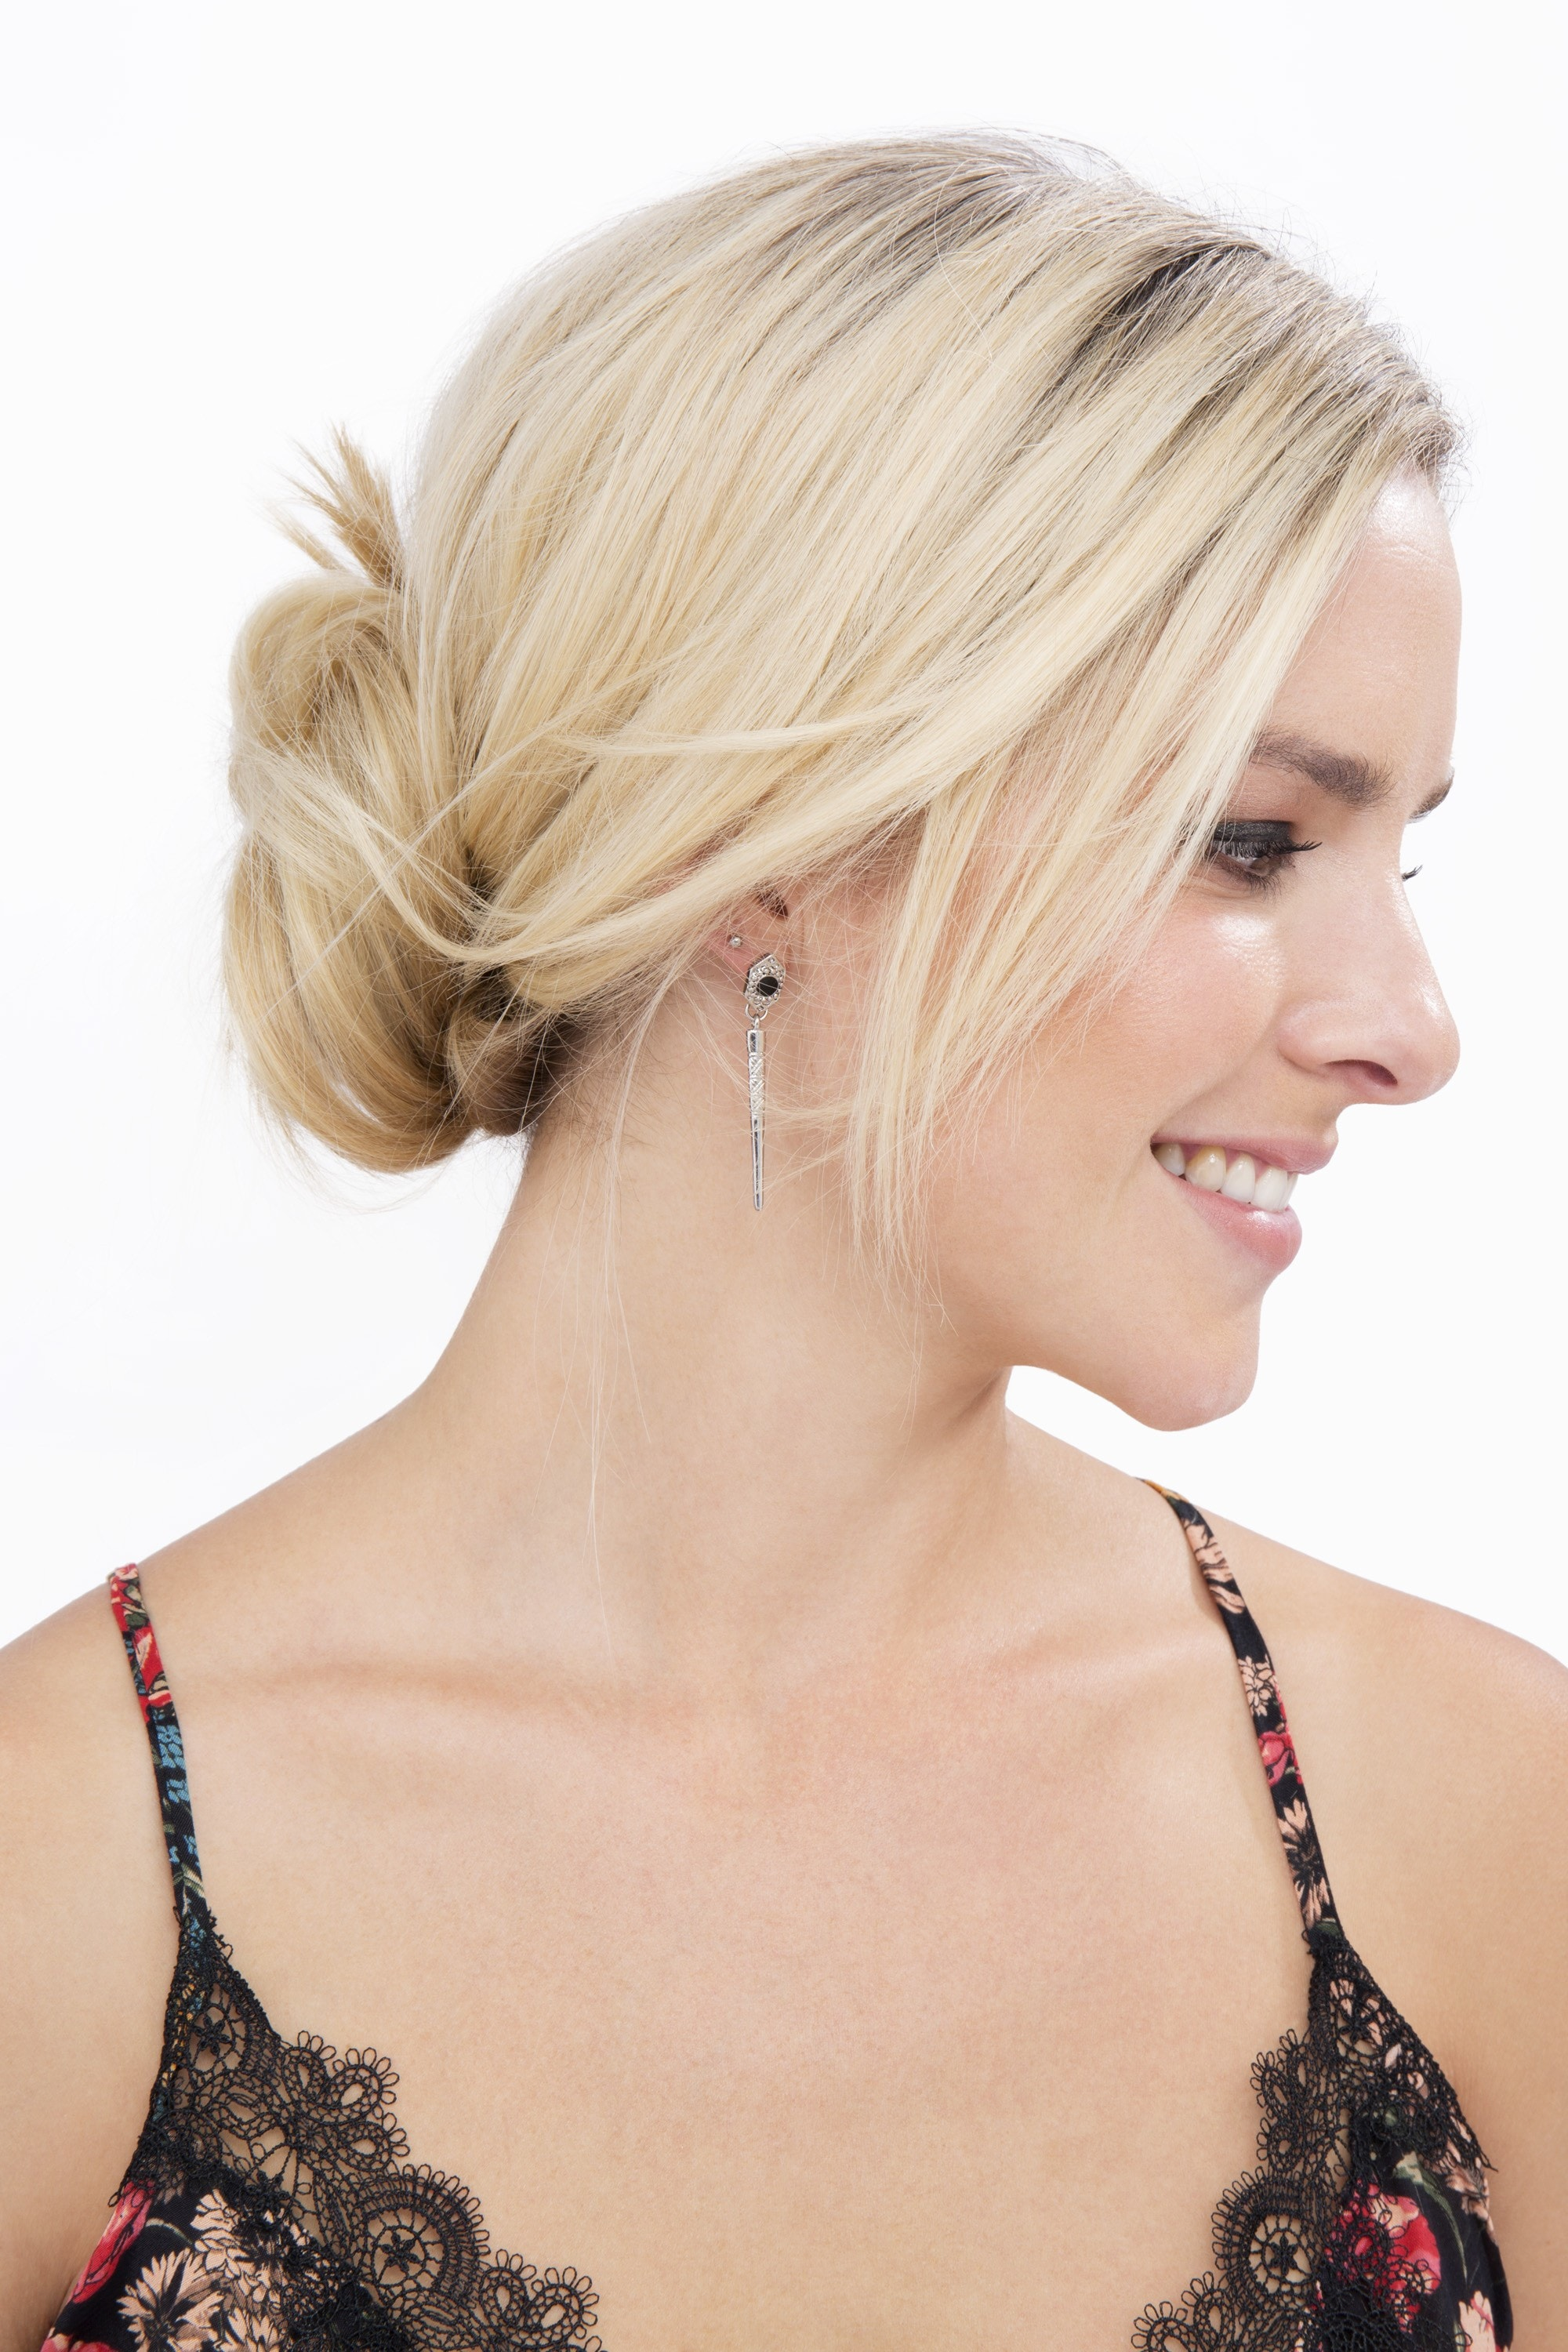 How To Do A Messy Bun With Long Hair 2 Ways